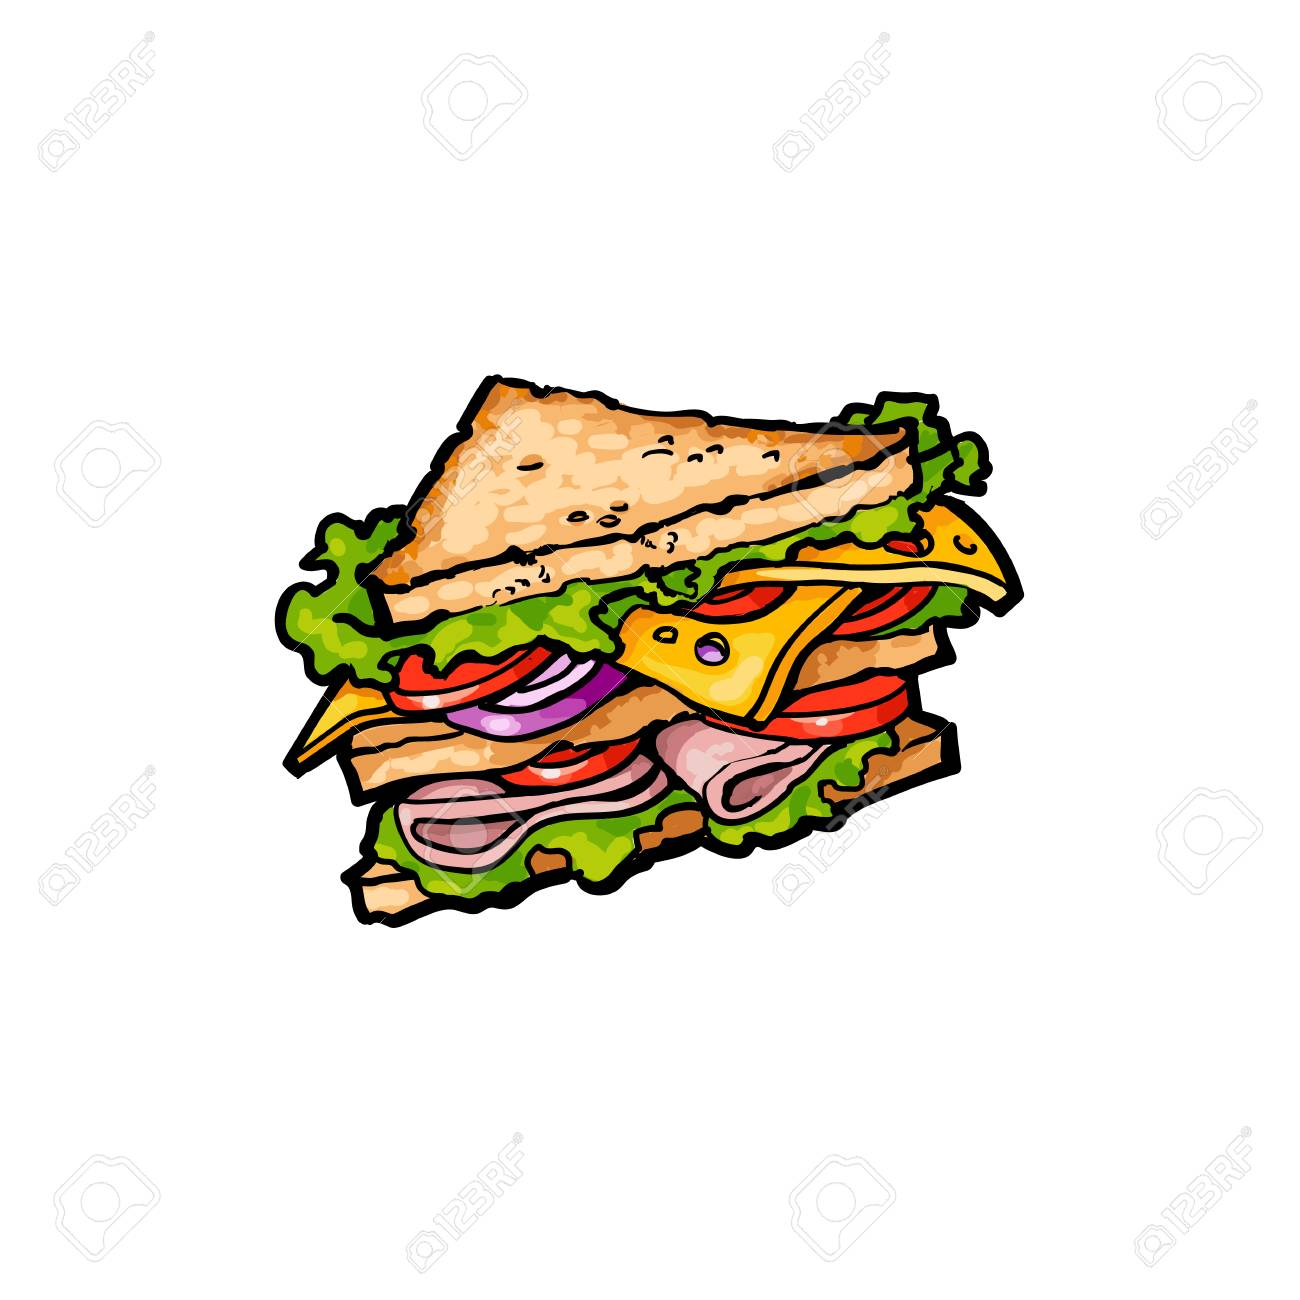 vector sketch sandwich with vegetables fast food flat cartoon royalty free cliparts vectors and stock illustration image 84404991 vector sketch sandwich with vegetables fast food flat cartoon